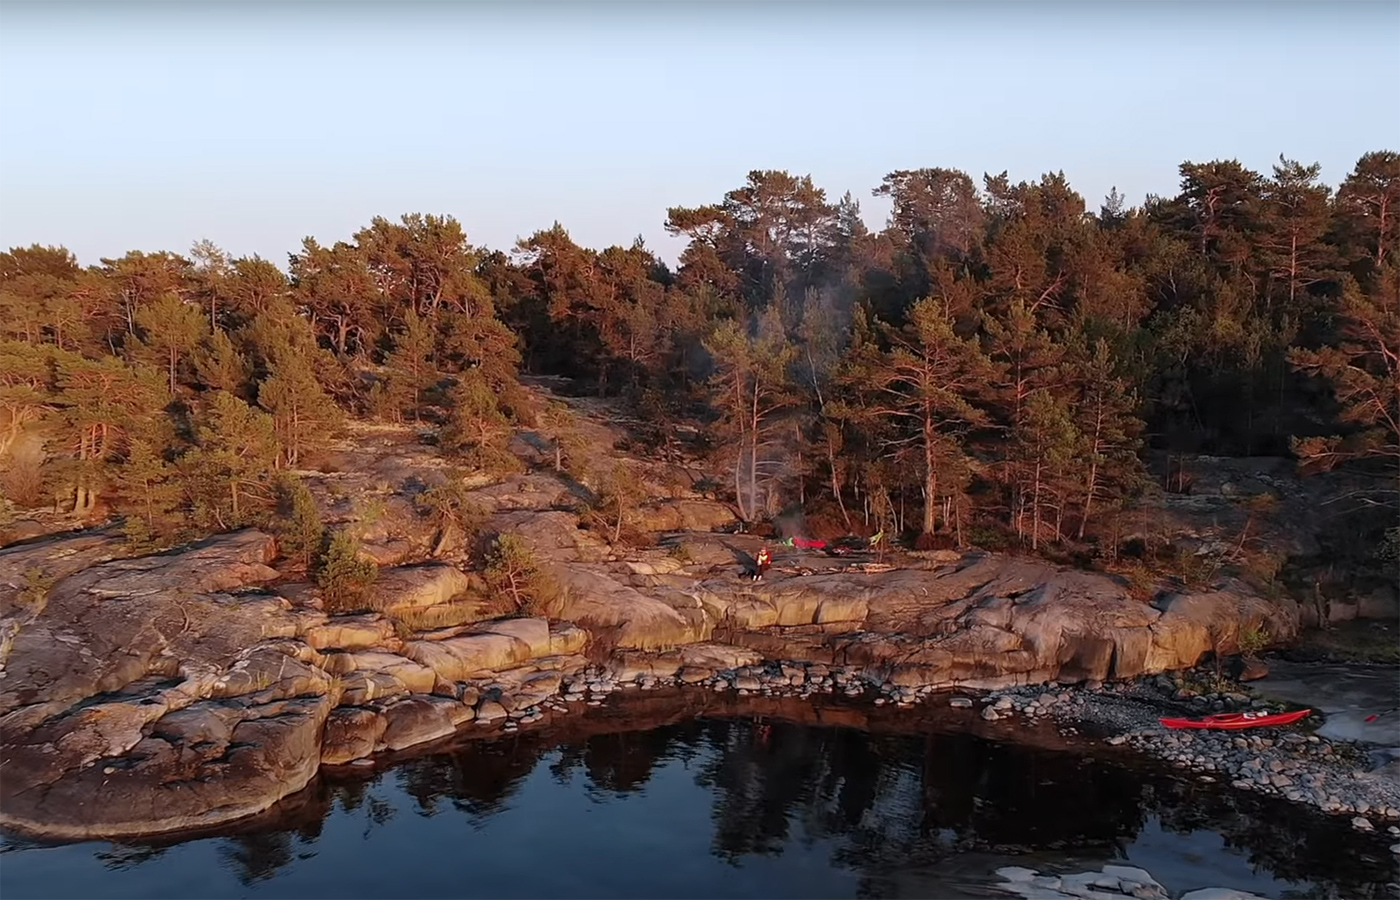 Wild camping by the shore